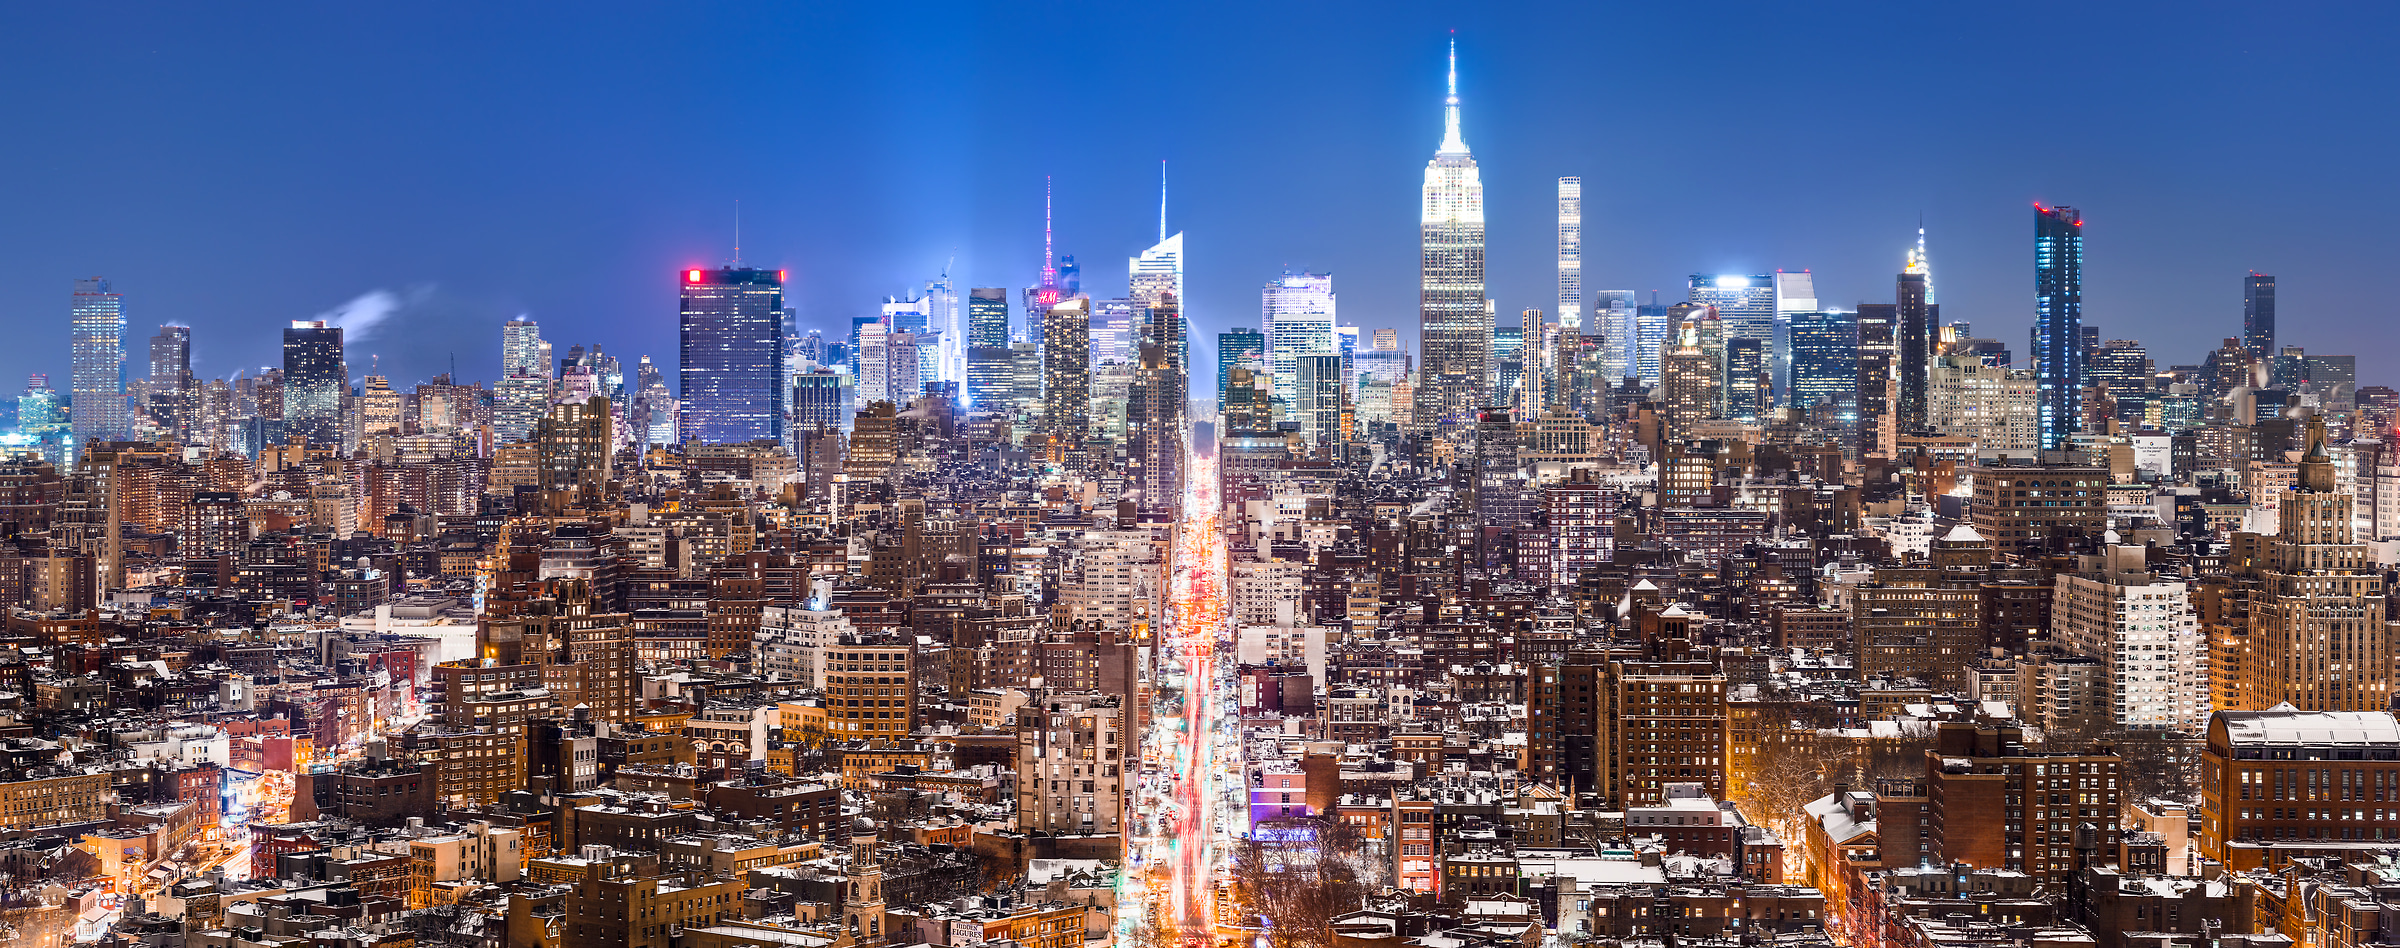 2,002 megapixels! A very high resolution, large-format VAST photo print of the NYC skyline in winter snow at night; cityscape fine art photo created by Dan Piech in New York City